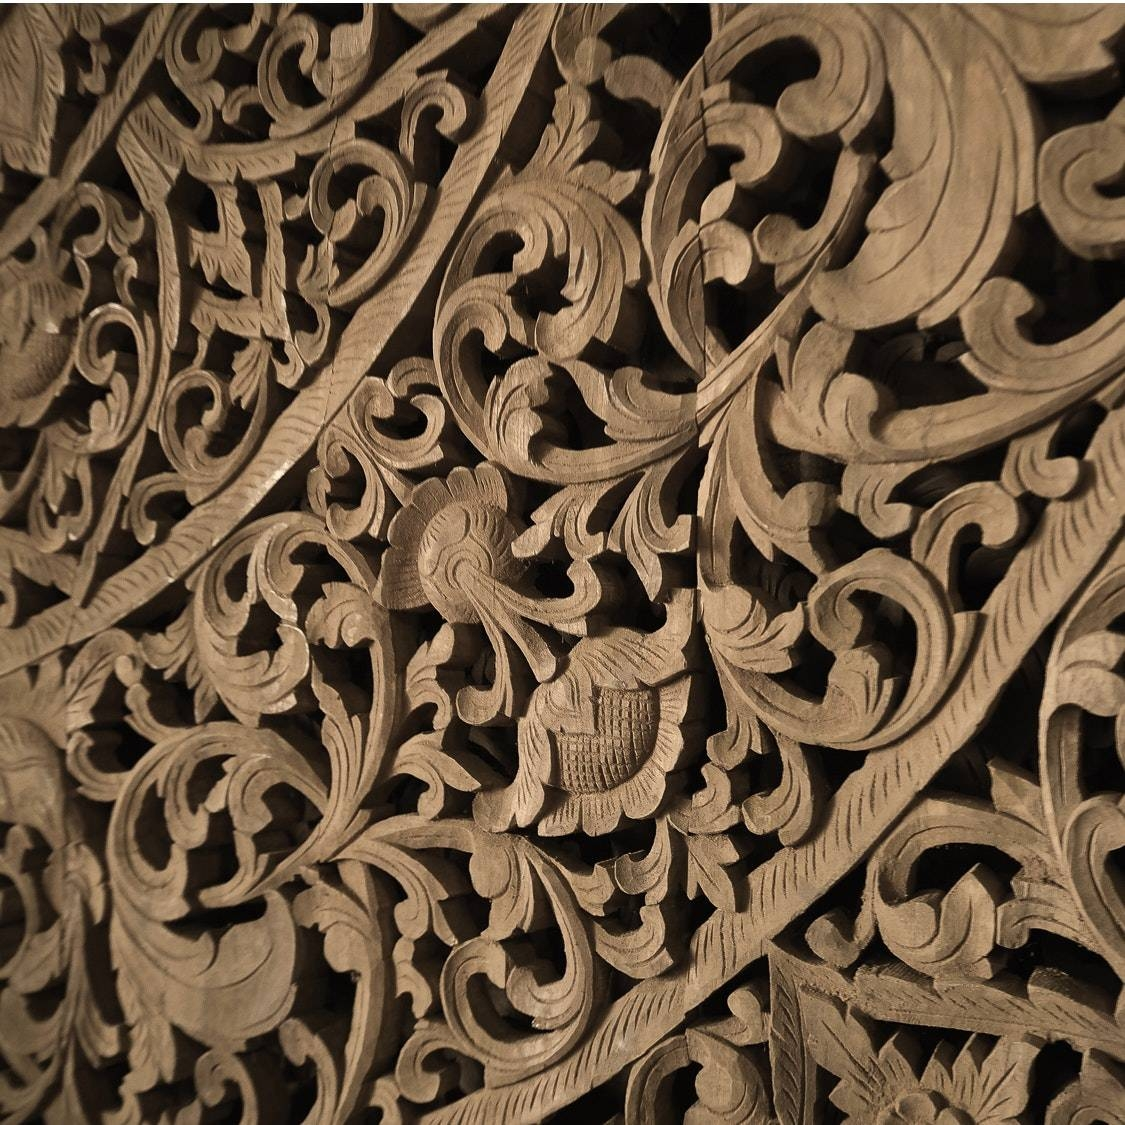 Wooden Wall Art Panels In Best And Newest Wood Carved Wall Art Panels (View 25 of 25)